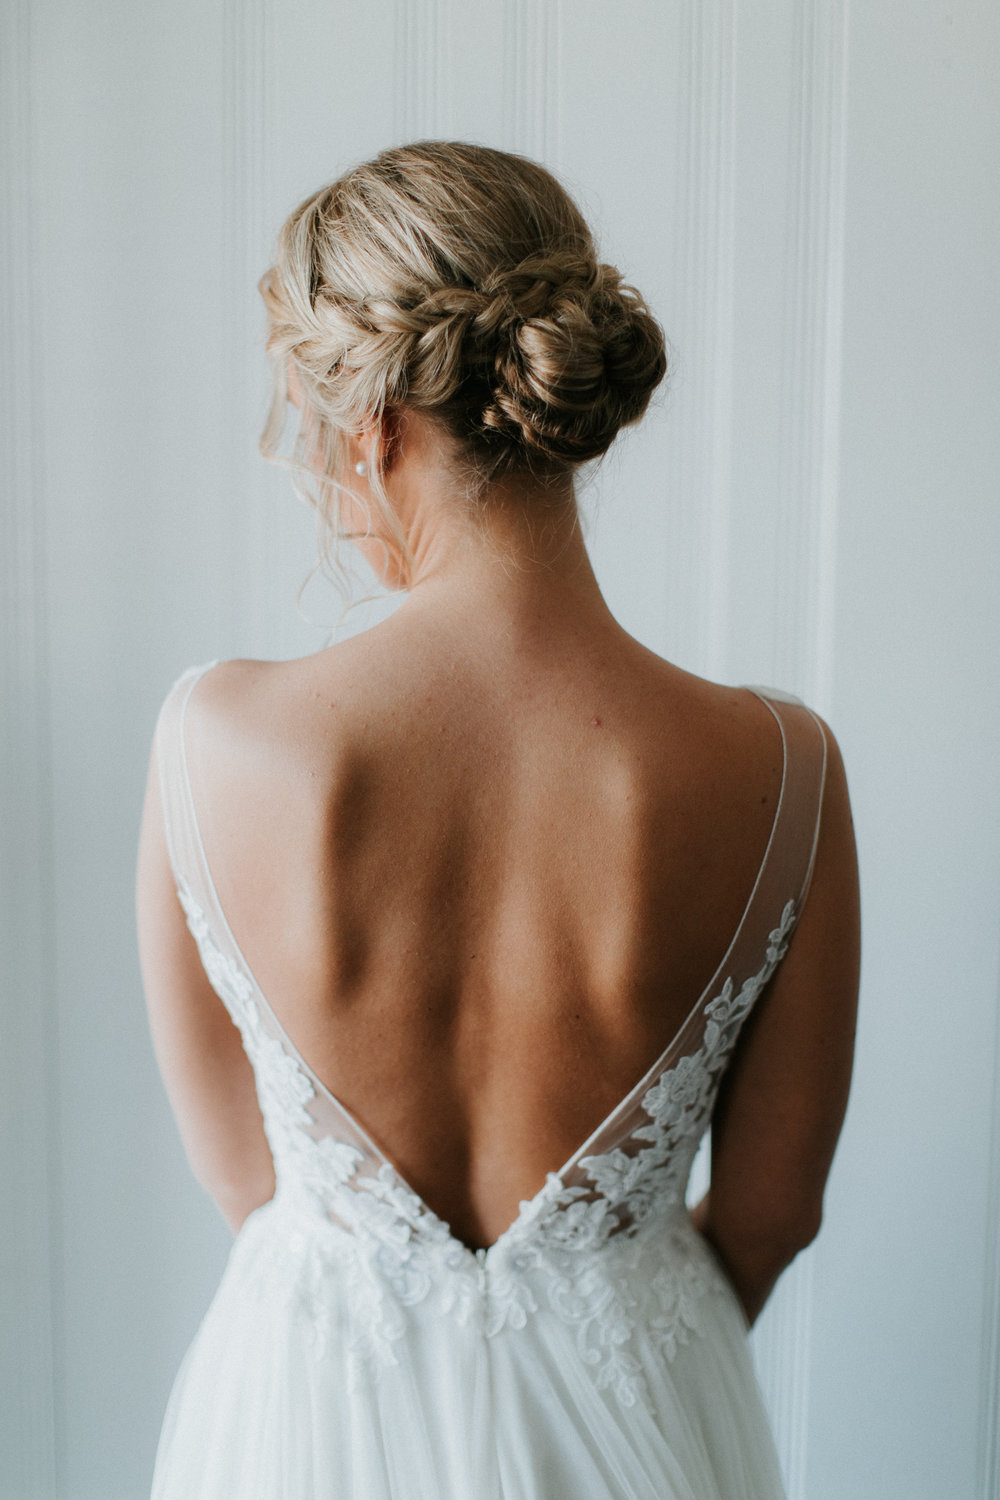 trevor_akila_wedding-147.jpg